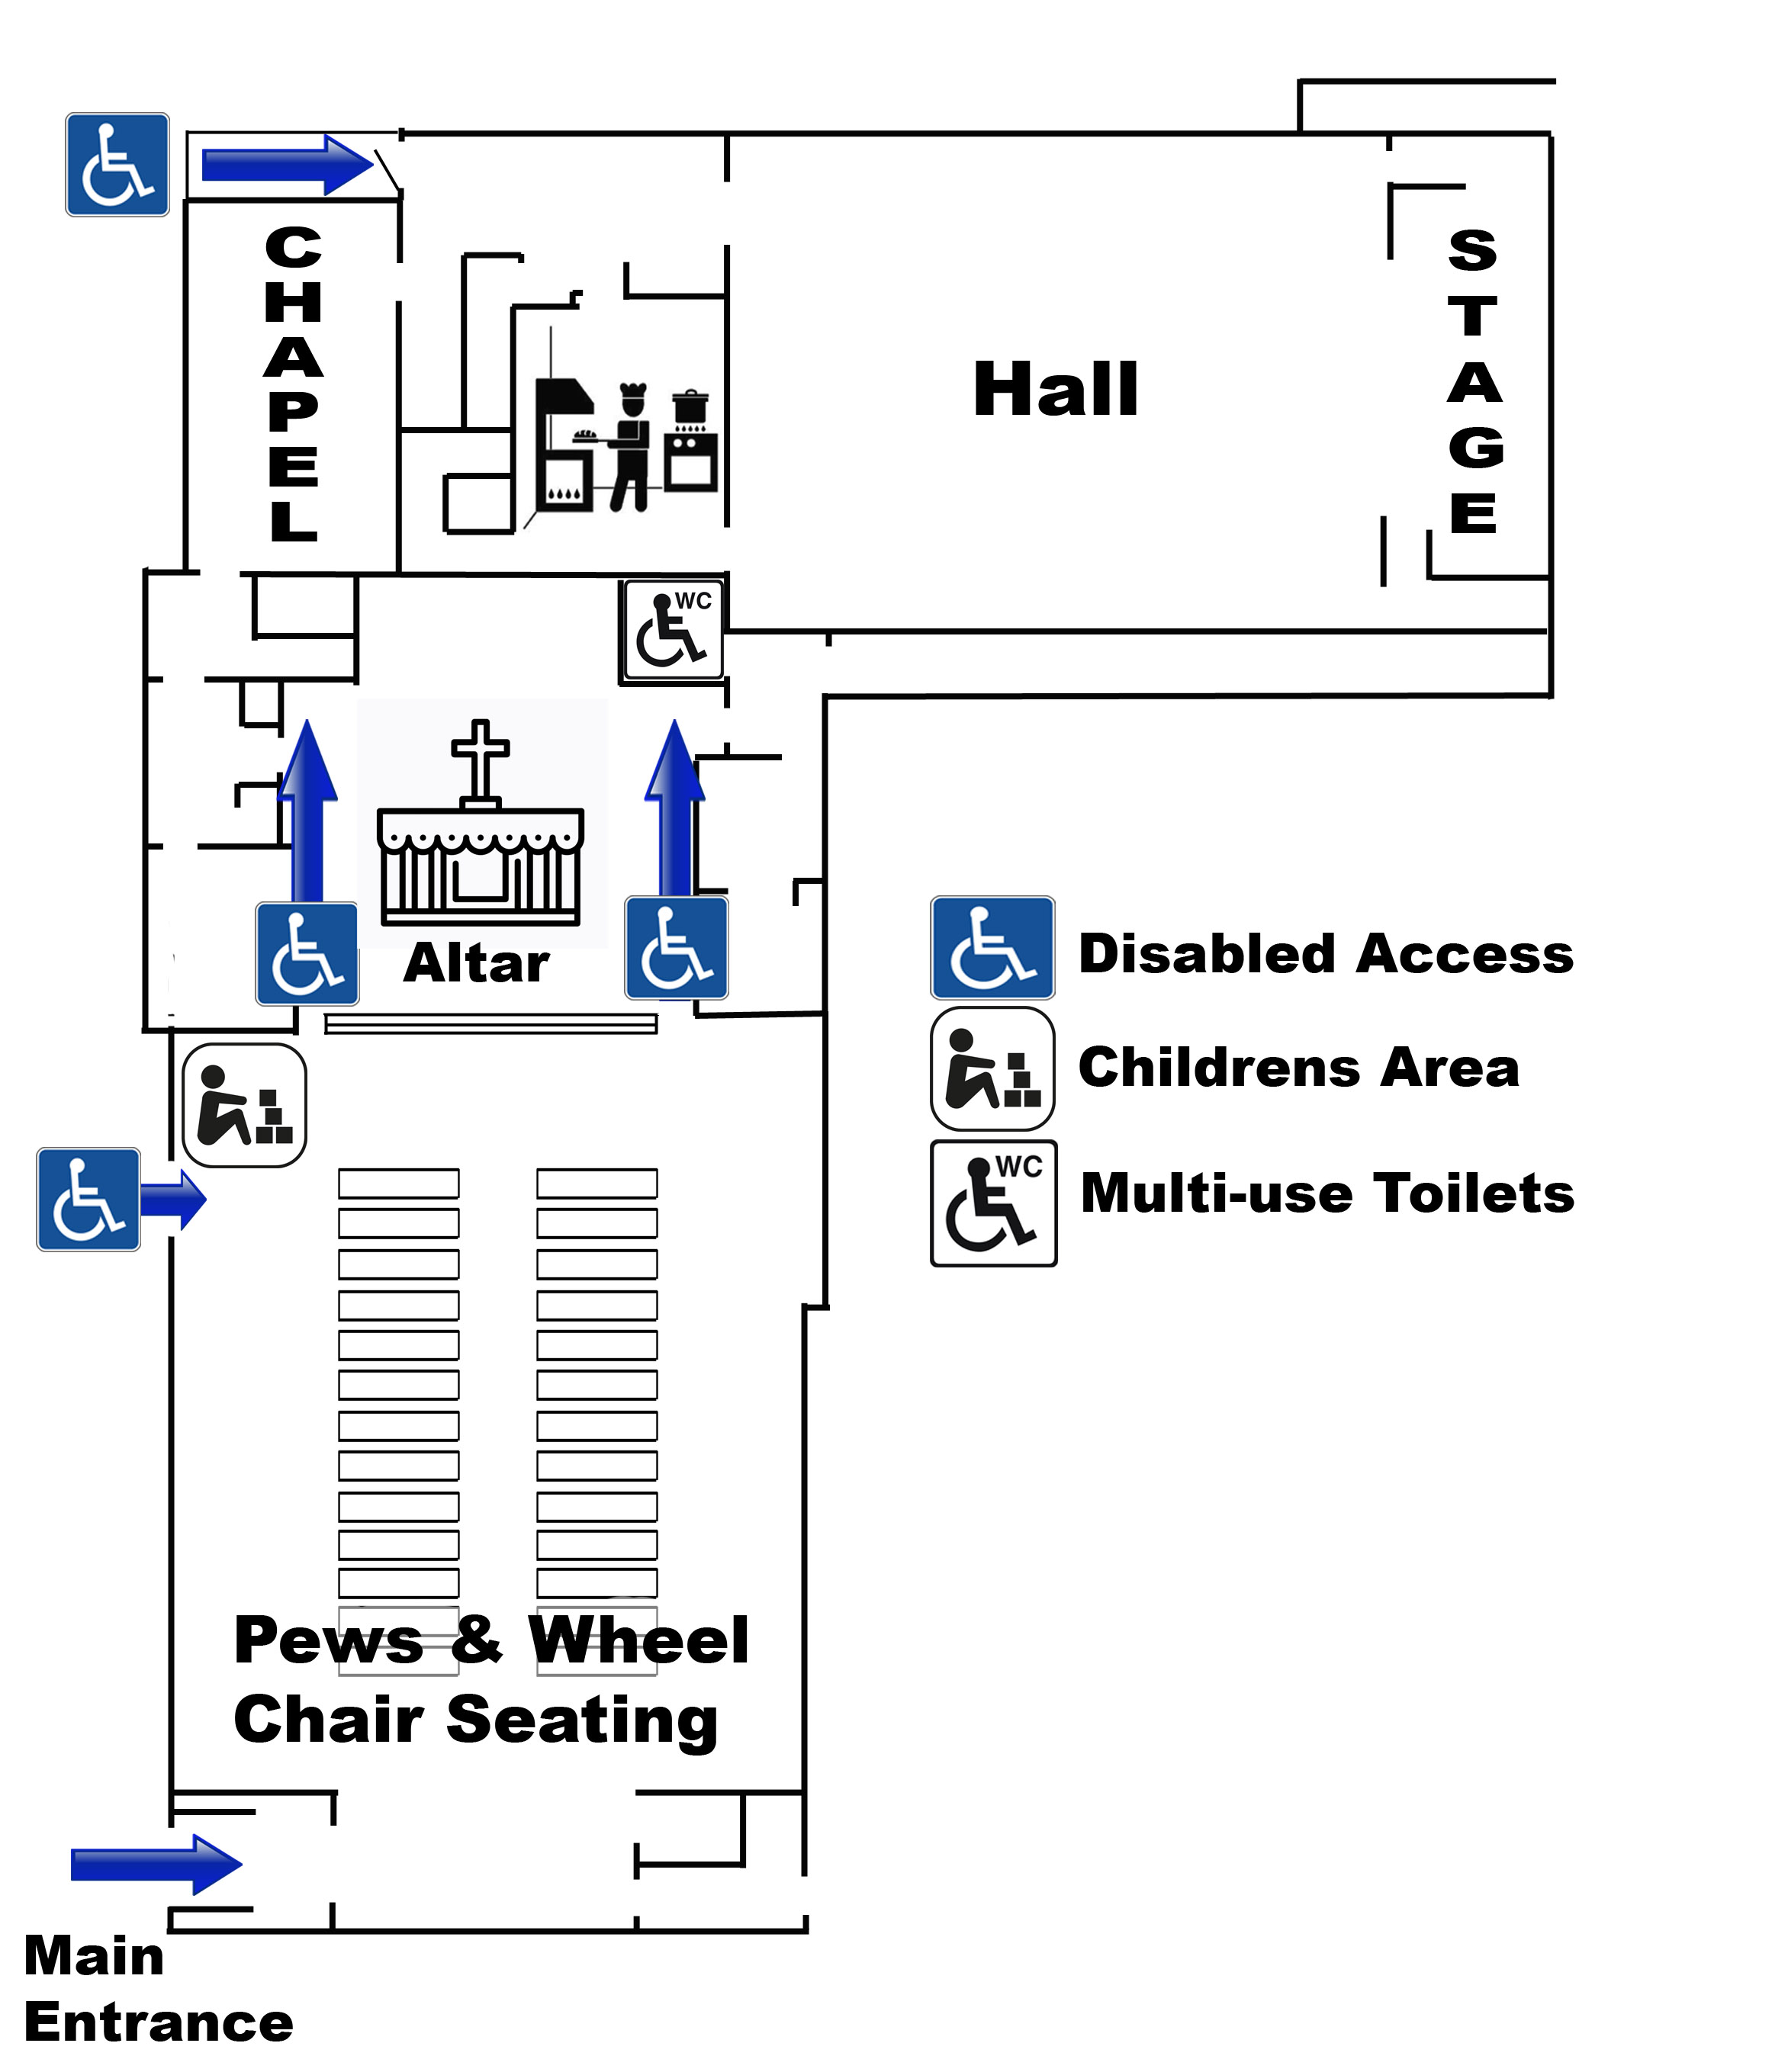 Map of cathedral showing wheelchair accessible information and children's area